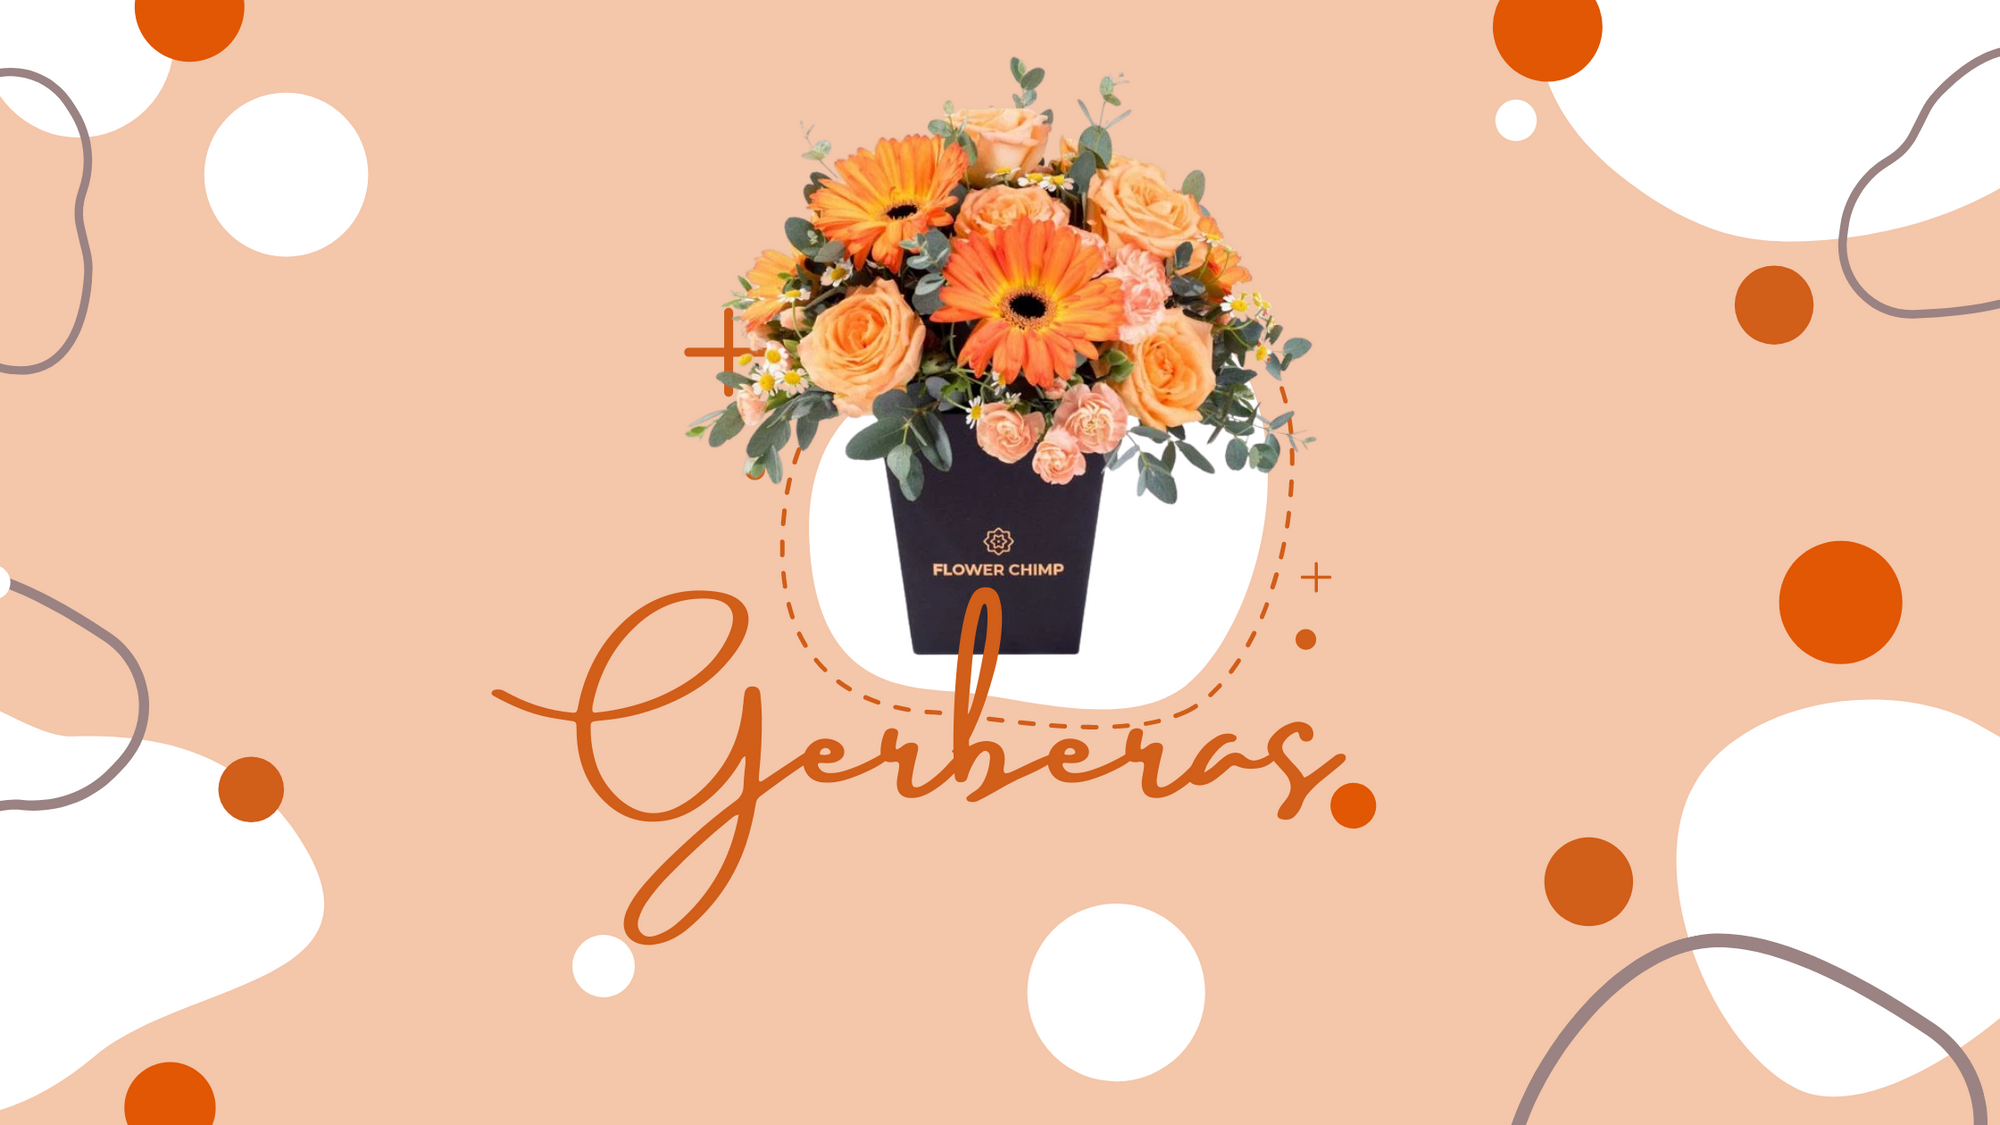 Gerbera Flower Bouquets_gerberas-flower-delivery